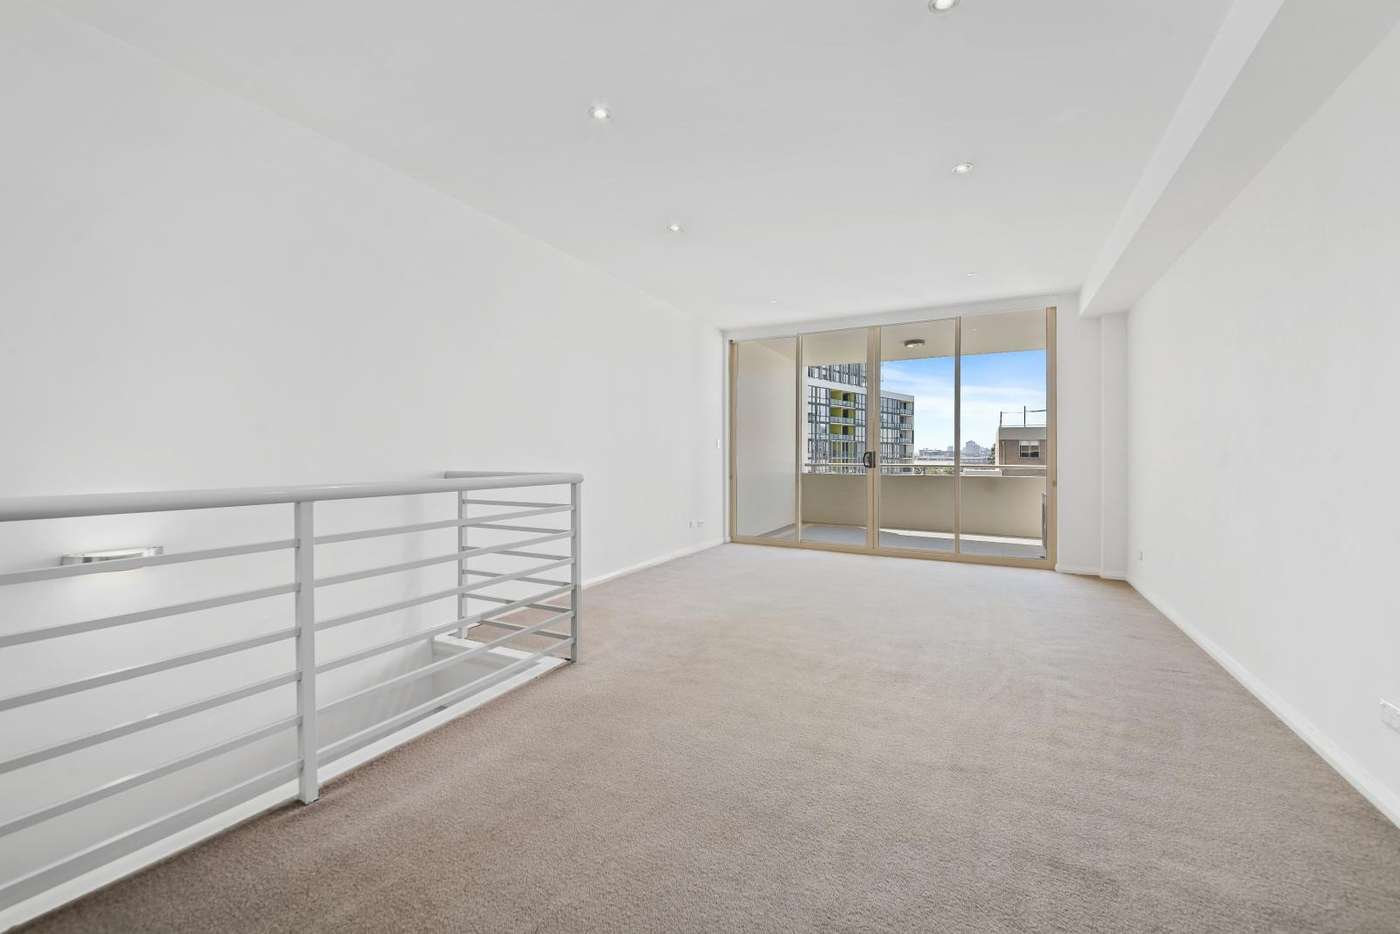 Main view of Homely apartment listing, 81/109-123 O'Riordan Street, Mascot NSW 2020